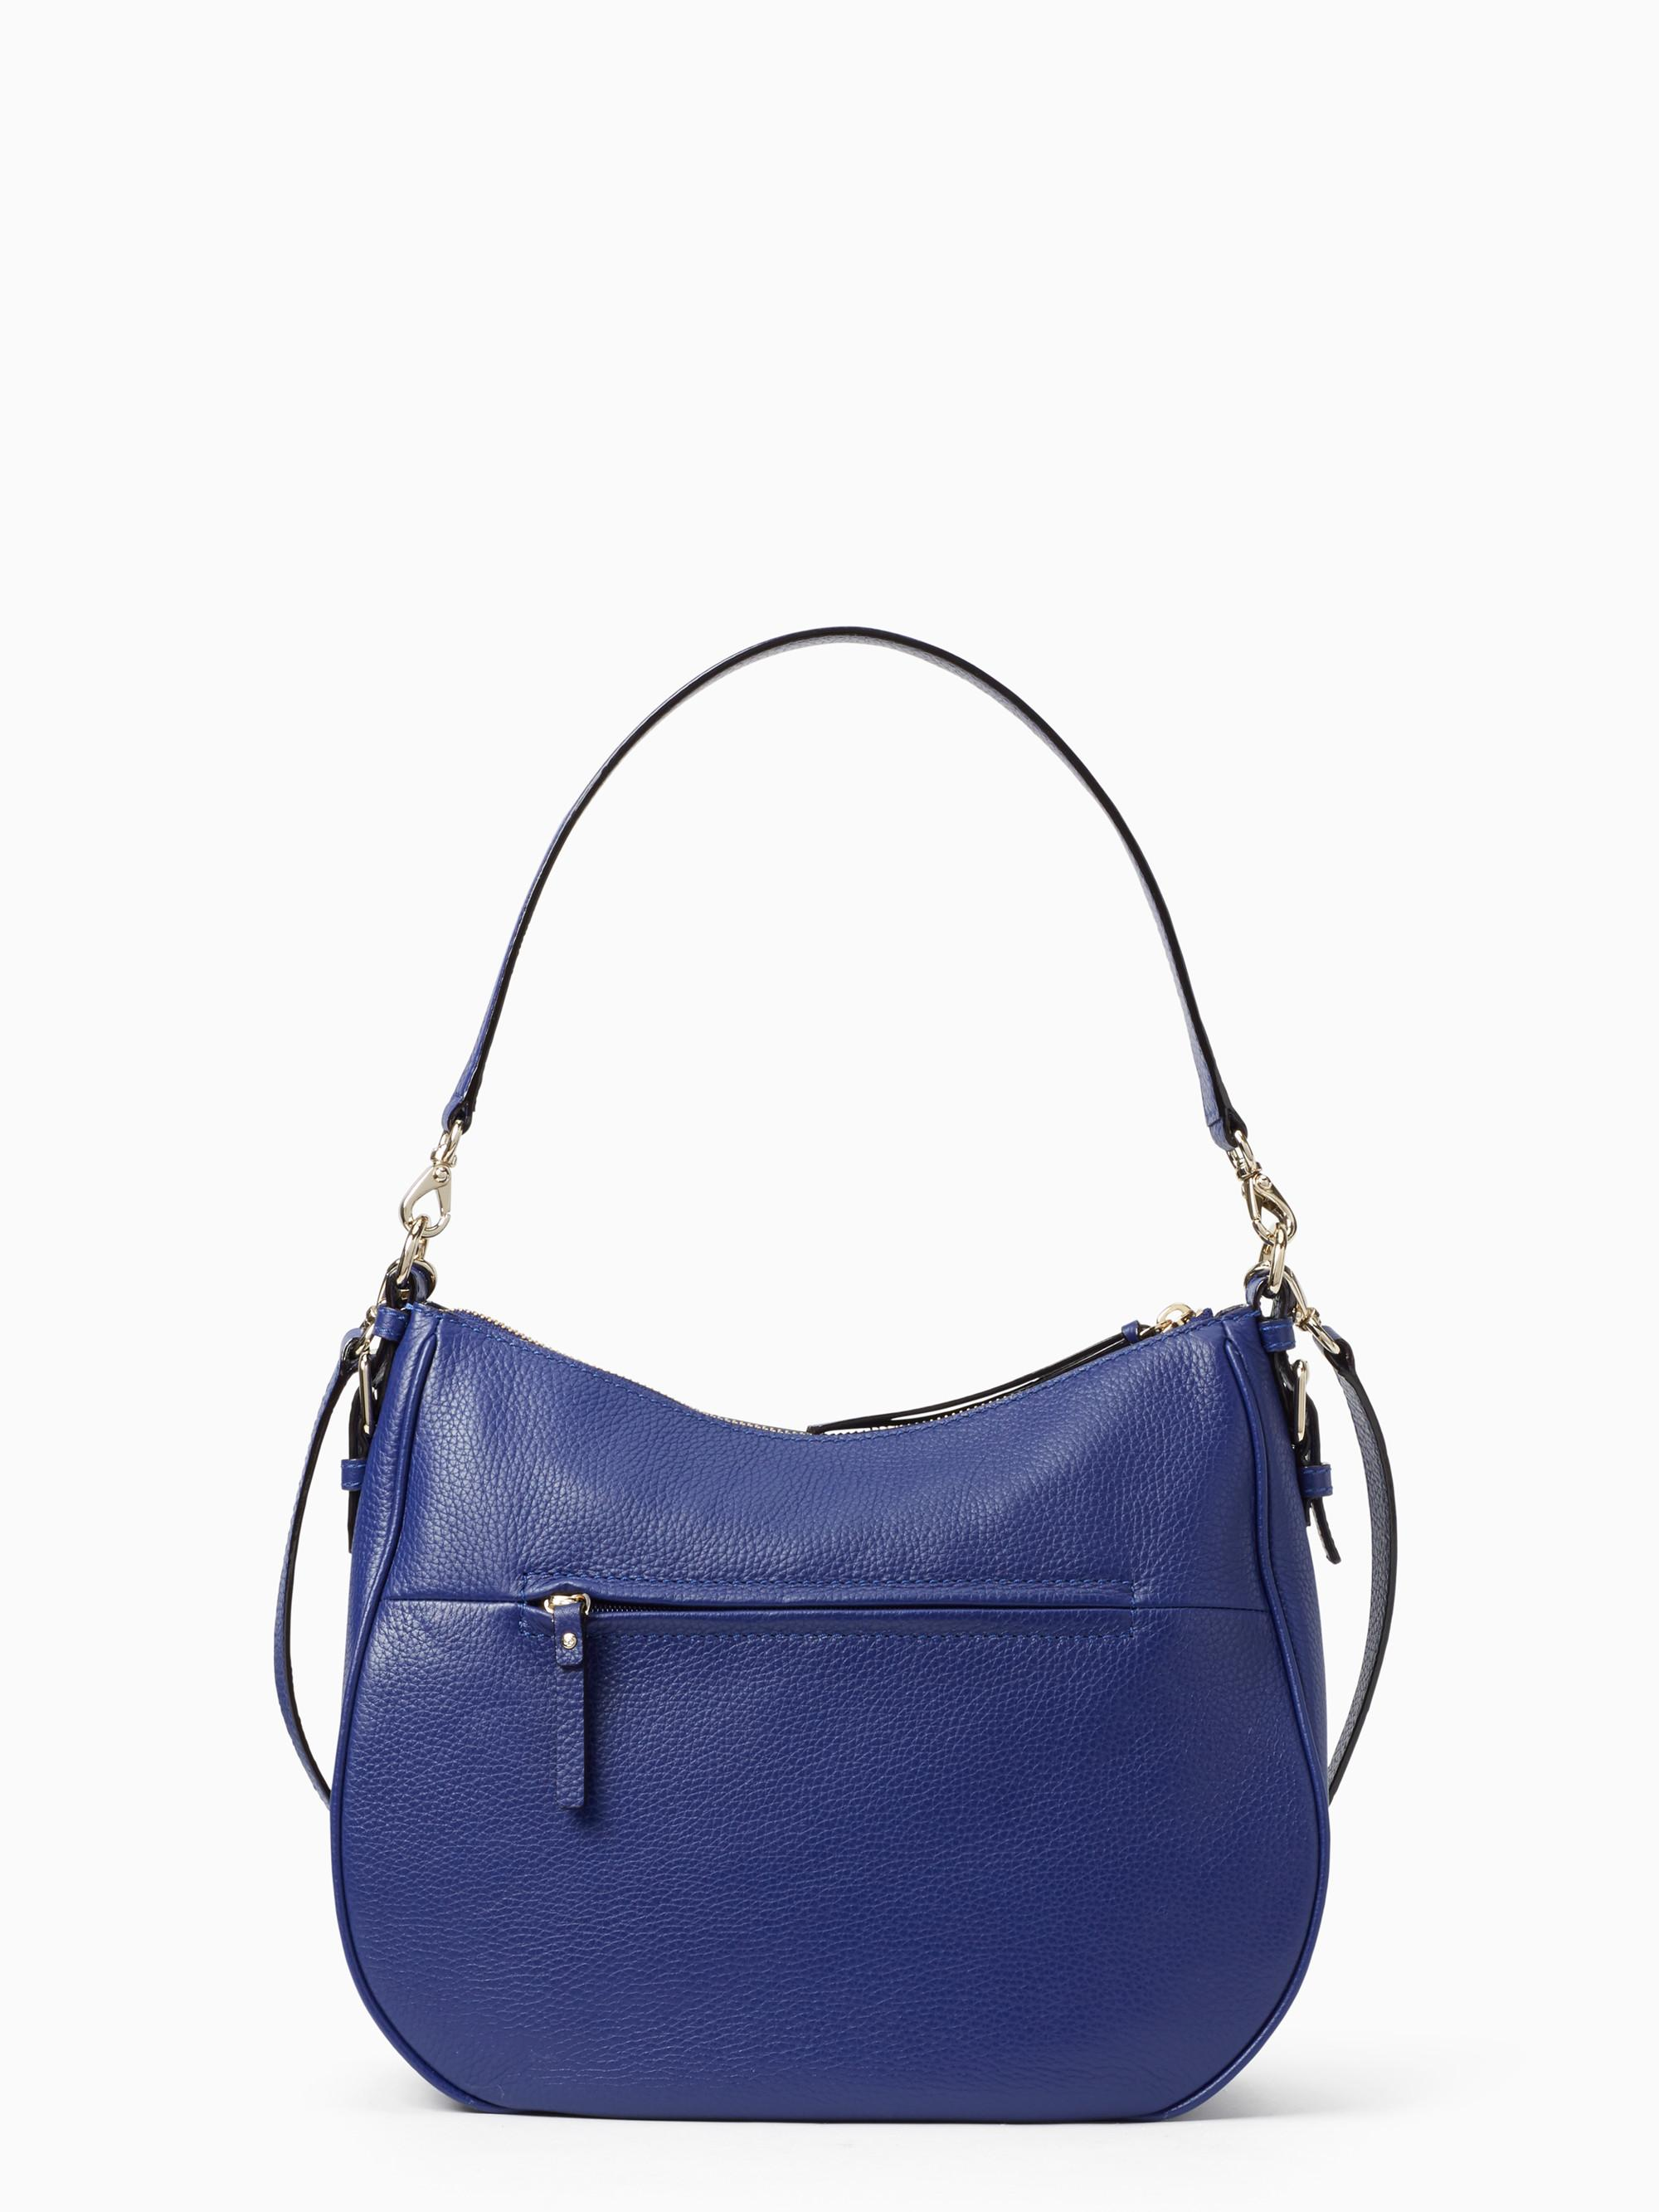 e4716648659 Kate Spade New York Cobble Hill Mylie in Blue - Lyst